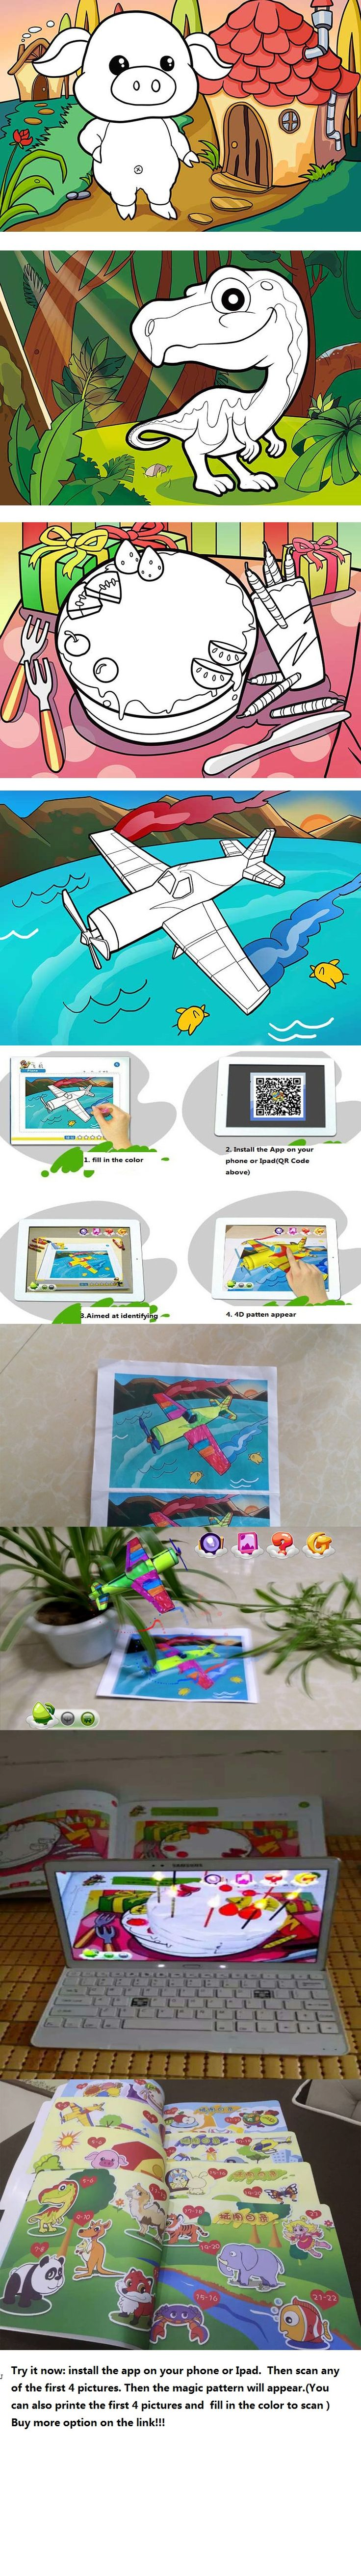 App Toy Installer : Best images about d painting books for kids on